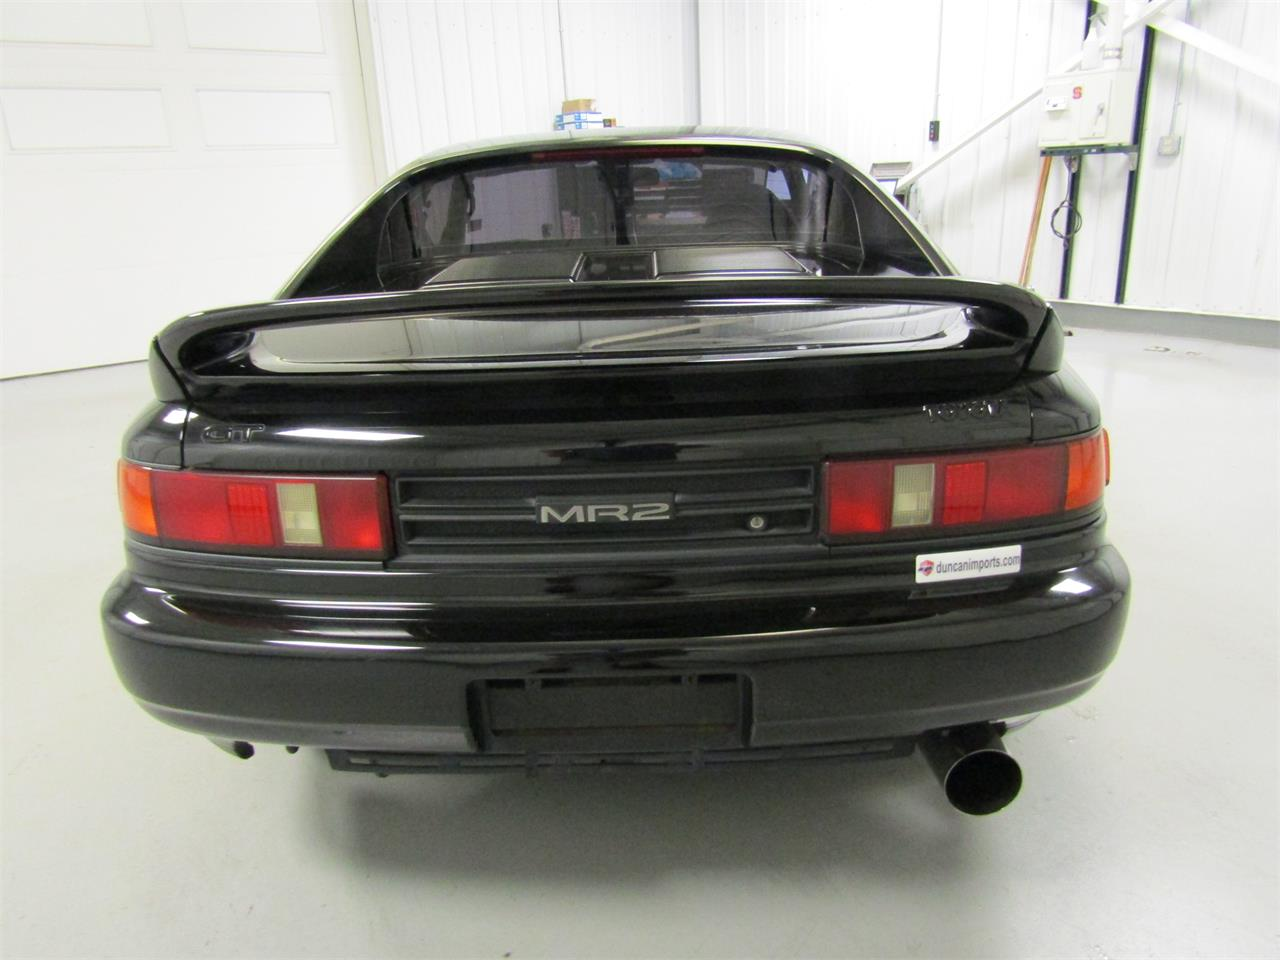 Large Picture of '92 Toyota MR2 - $16,991.00 - OLED